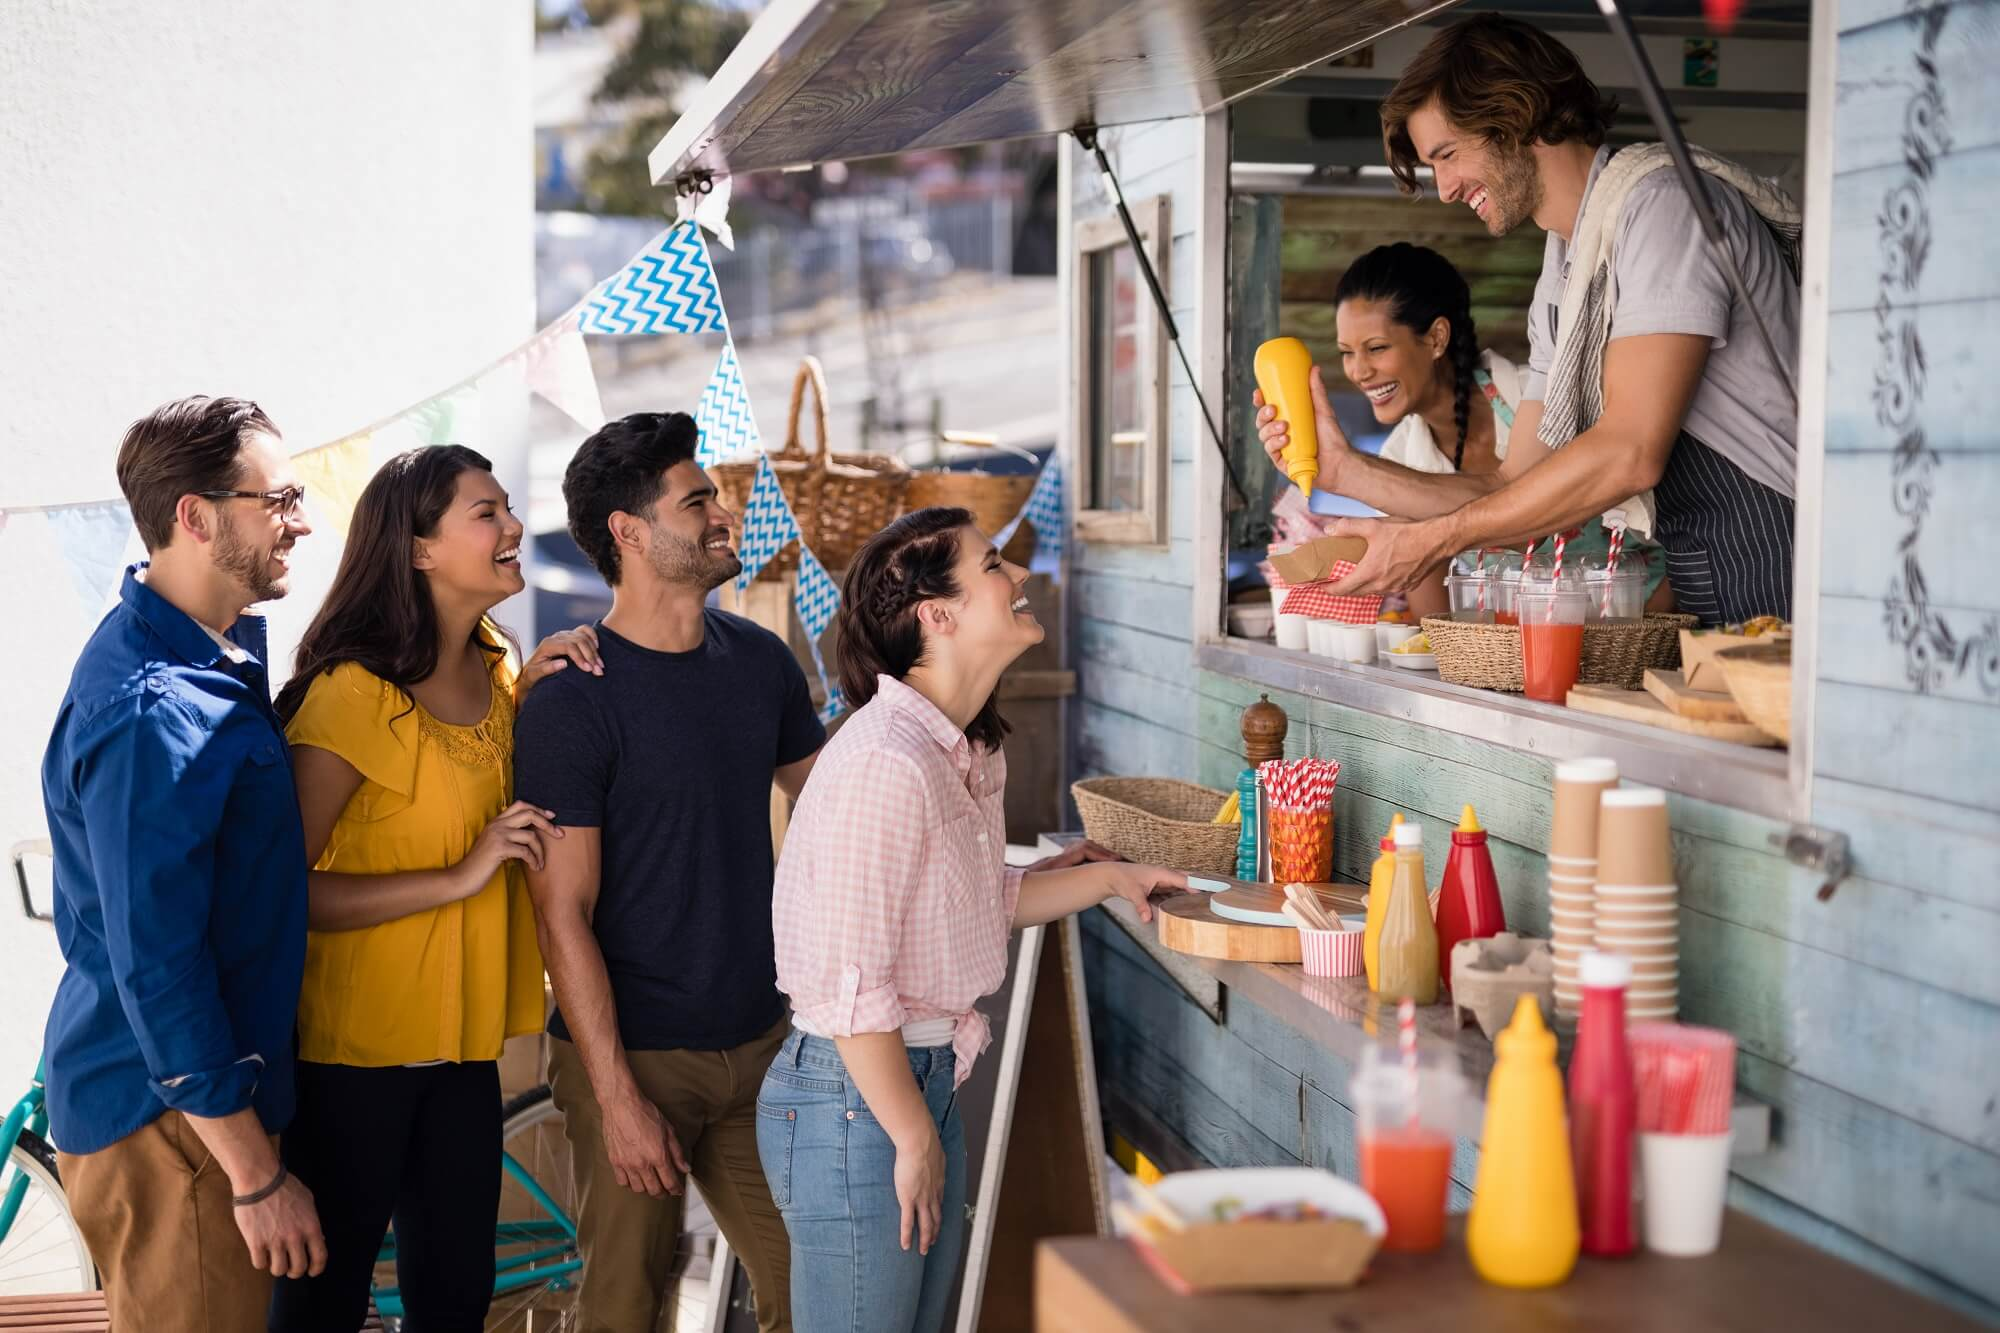 Smiling waiter serving customers at counter in food truck